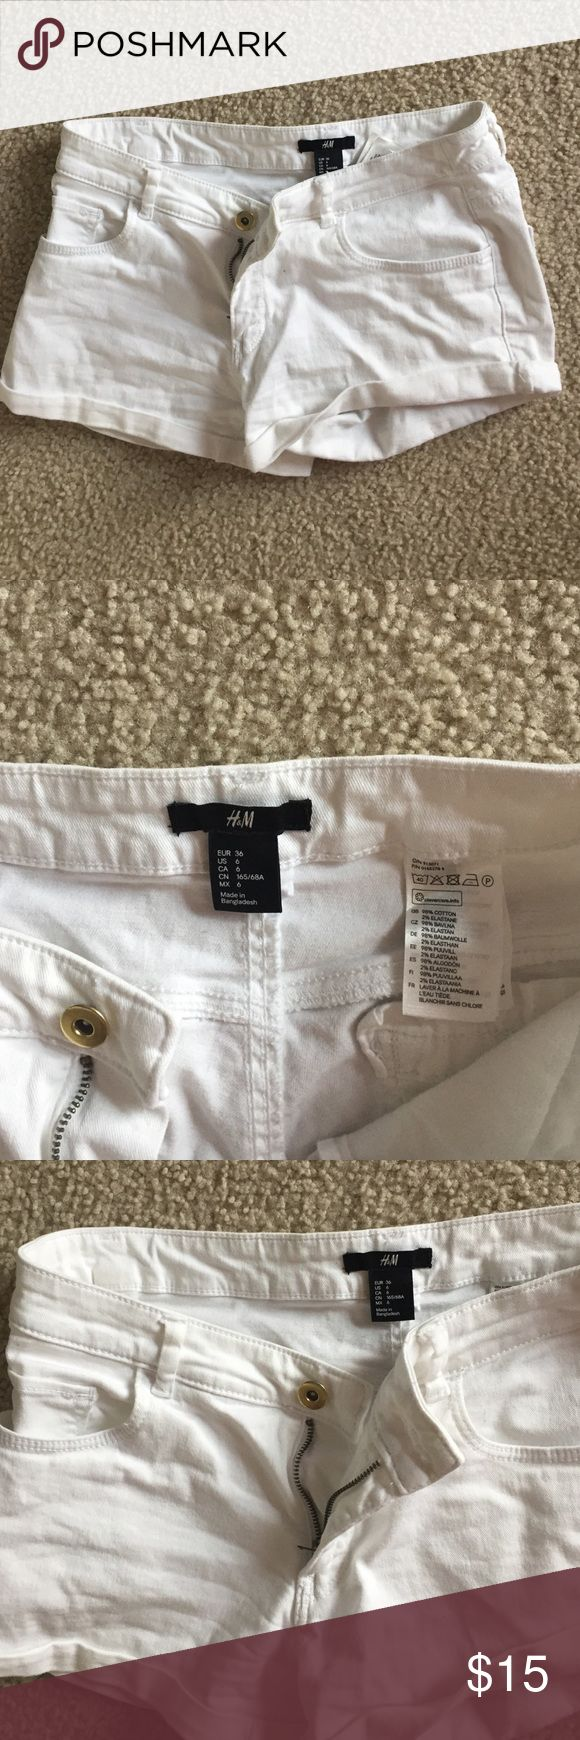 White blue jean shorts from H&M. Women's A pair of white blue jean shorts from H&M. Women's size 6. Runs very small. In perfect condition with no stains or holes. A gold button in the front with a zipper. 2 pockets in the back. Plain-no design H&M Shorts Jean Shorts